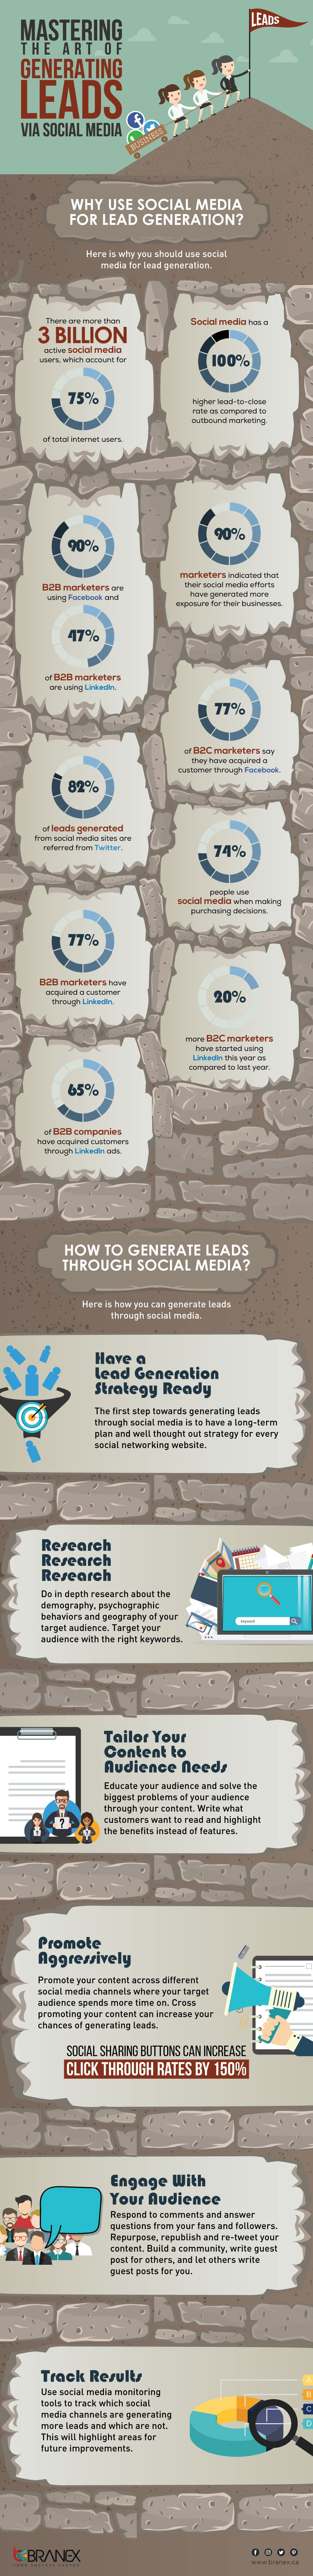 Mastering the Art of Generating Leads via Social Media [Infographic] | Social Media Today